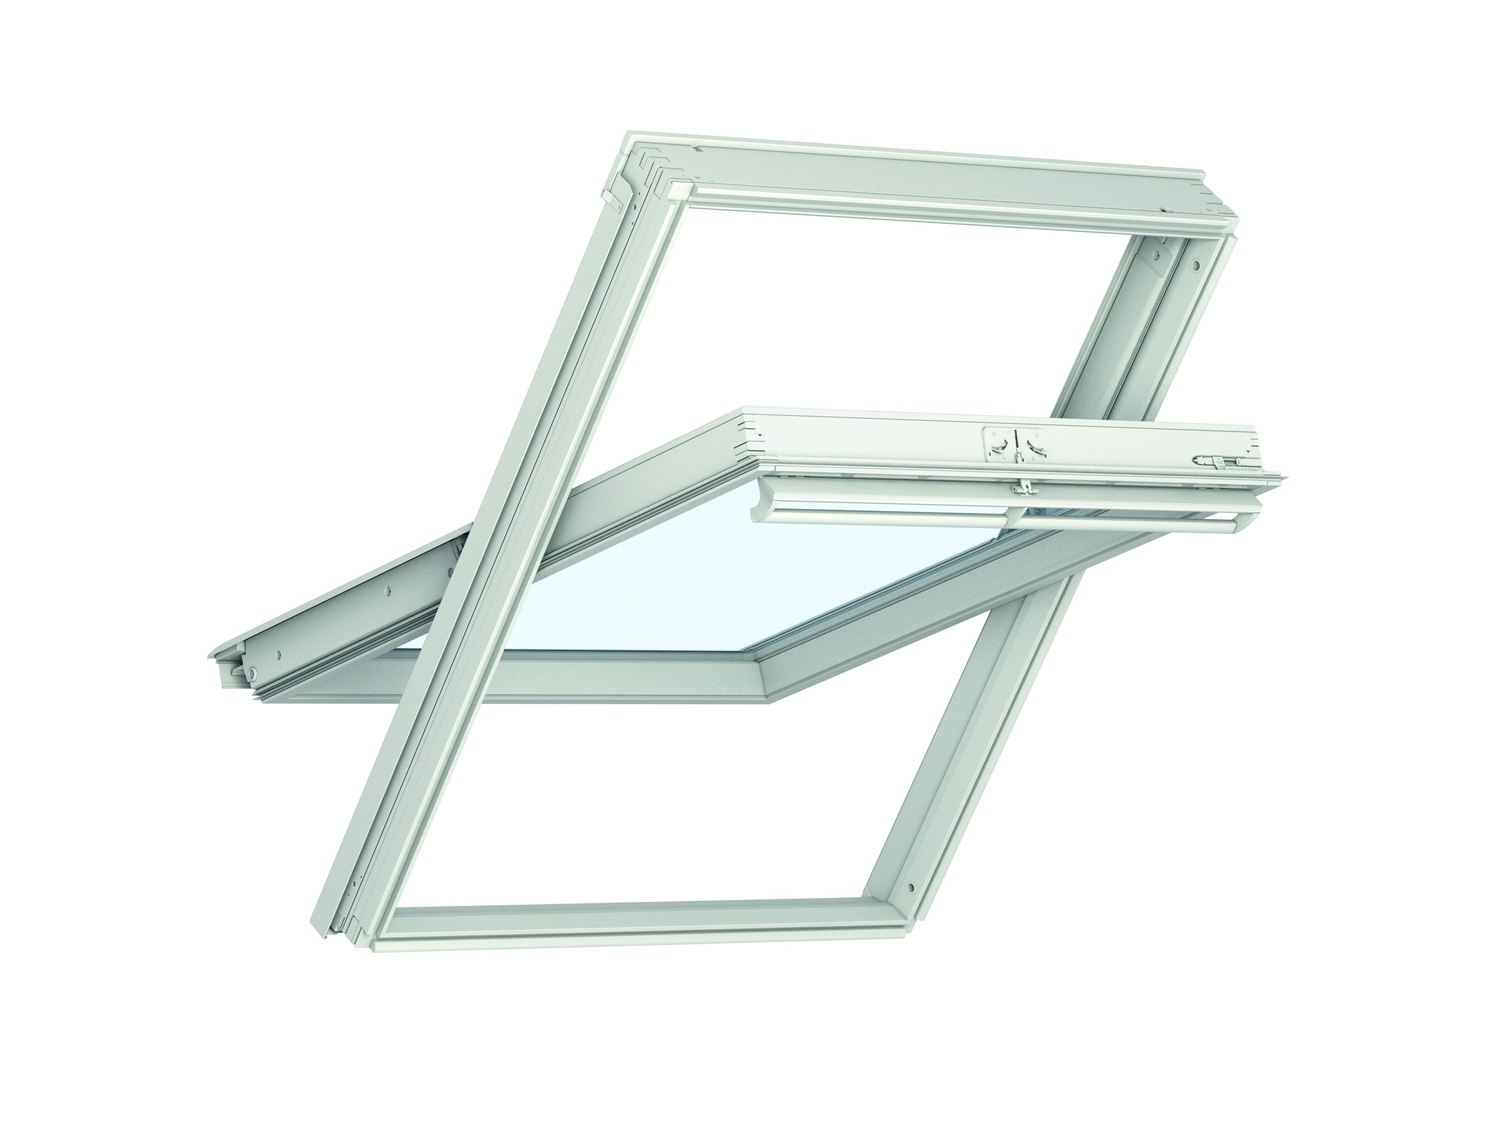 velux dachfenster schwingfenster ggu 0070 kunststoff thermostar ebay. Black Bedroom Furniture Sets. Home Design Ideas